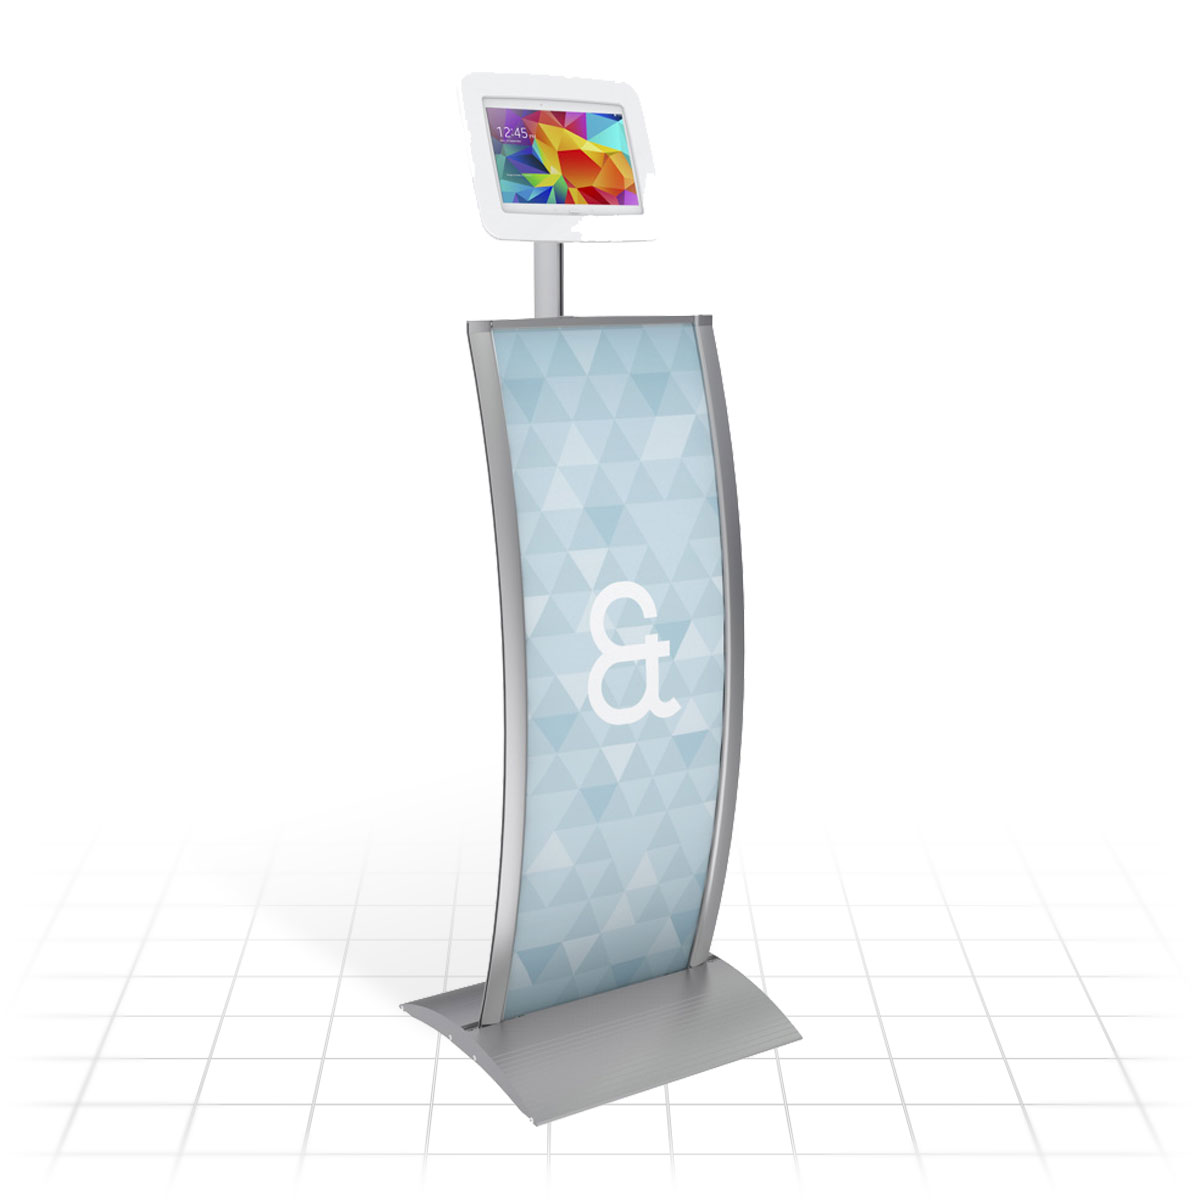 Kiosk Plus Tablet Display Stand Tablet Display Stands